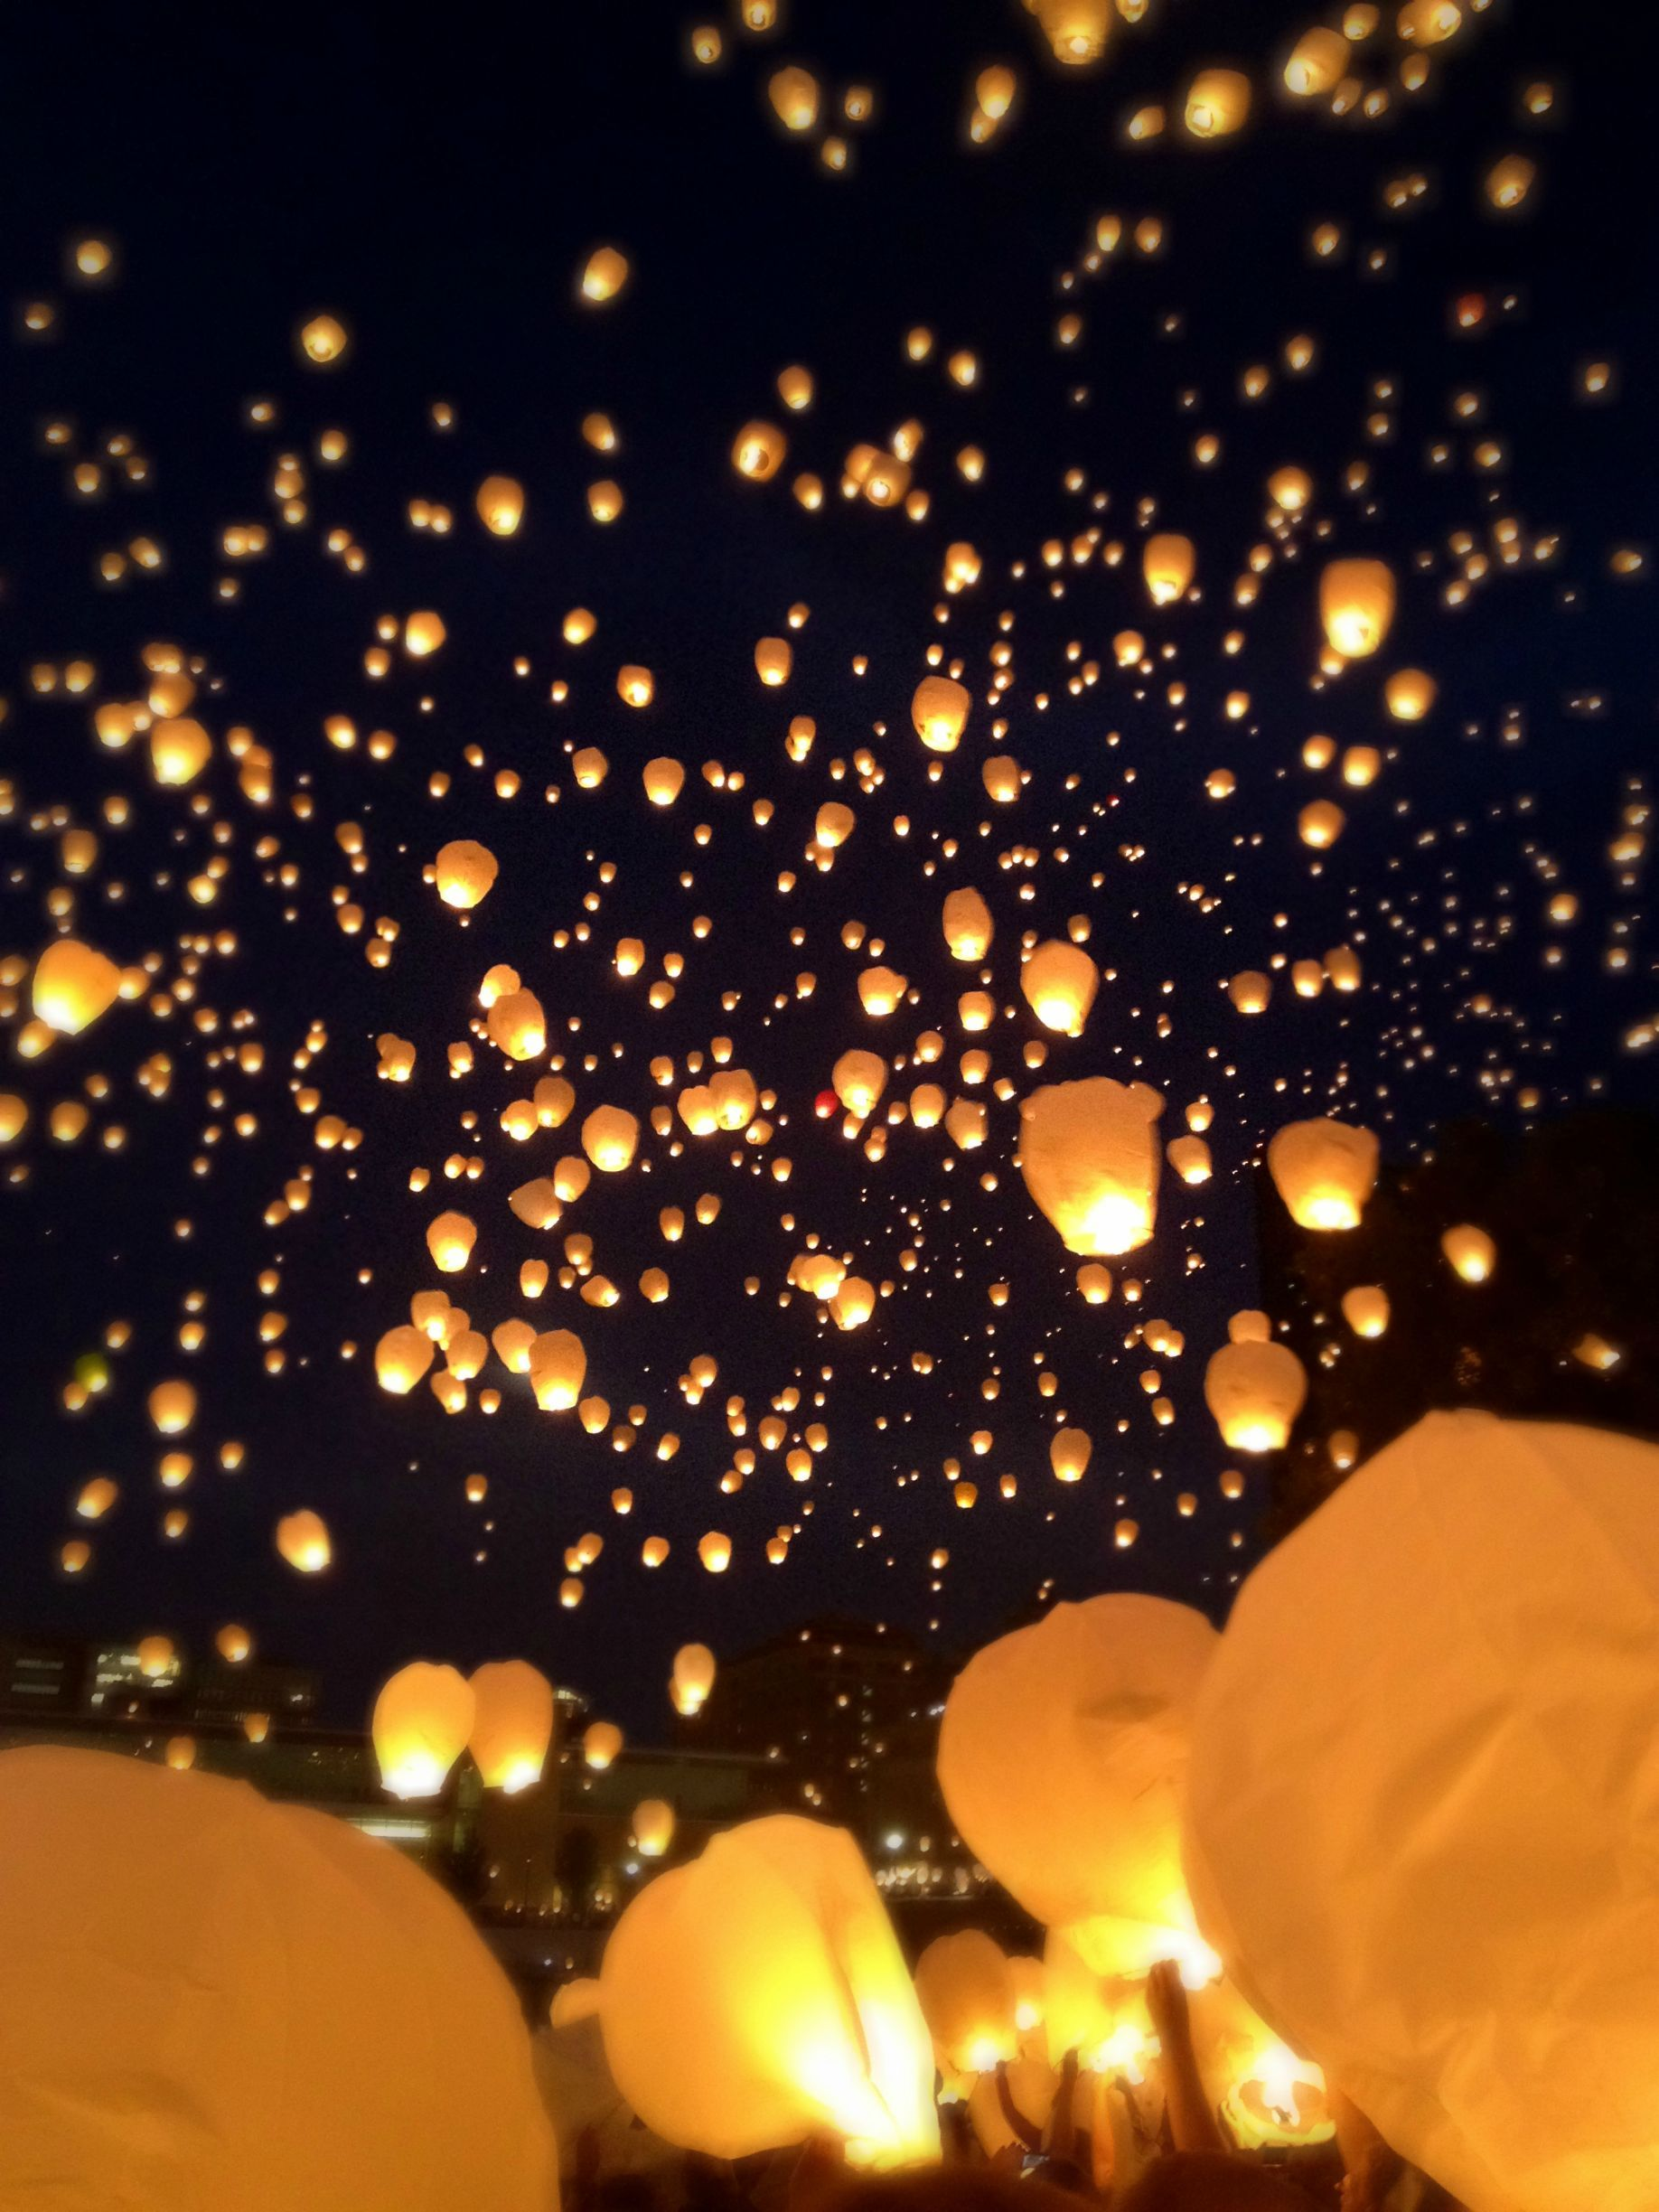 Sky Lantern Festival | Sky lanterns, Grand rapids michigan and ... for Tangled Lanterns Iphone Wallpaper  111bof